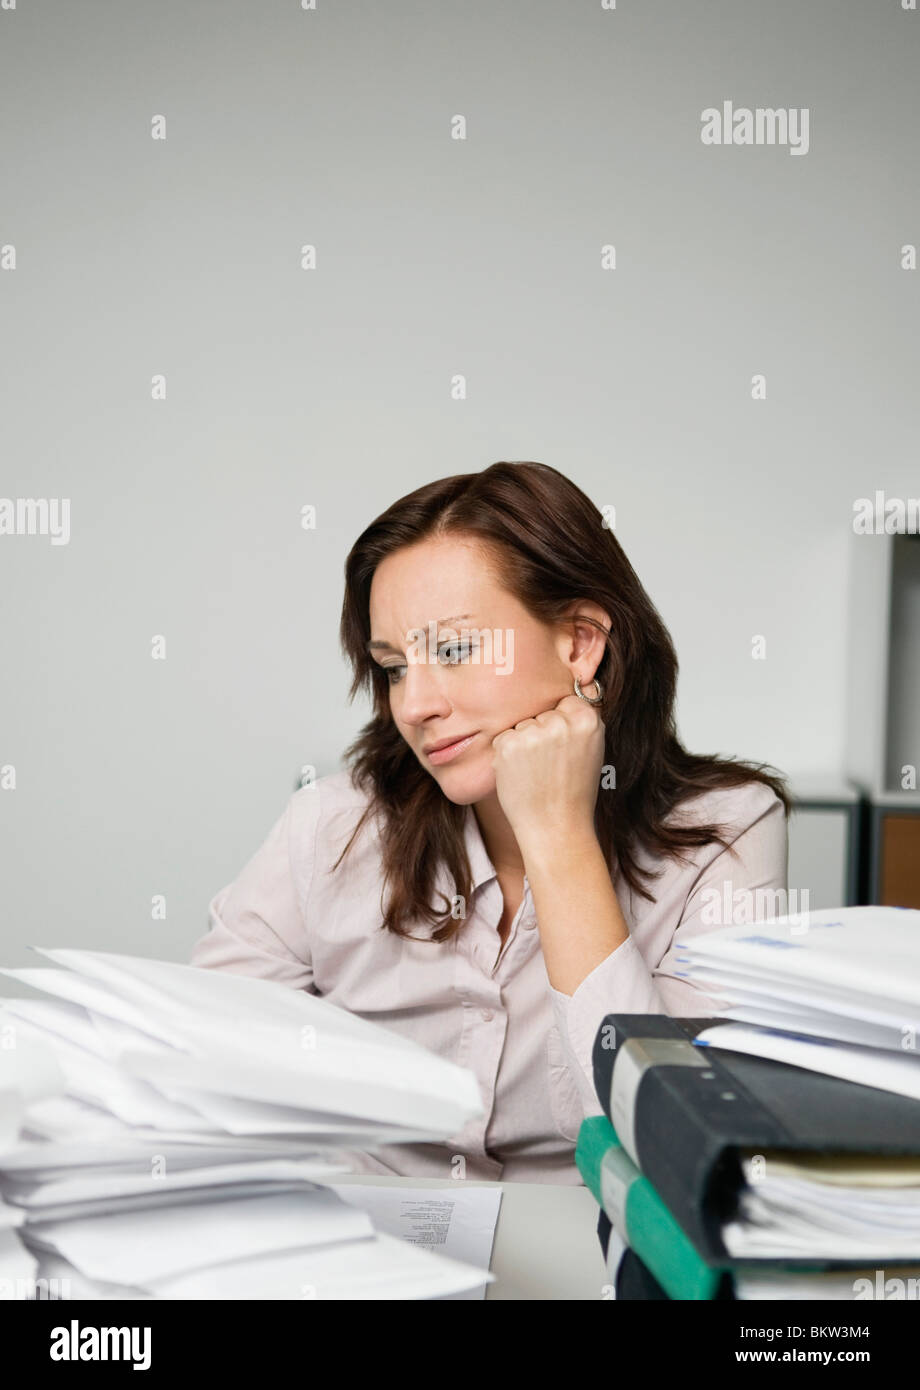 Troubled woman behind piles of paper - Stock Image